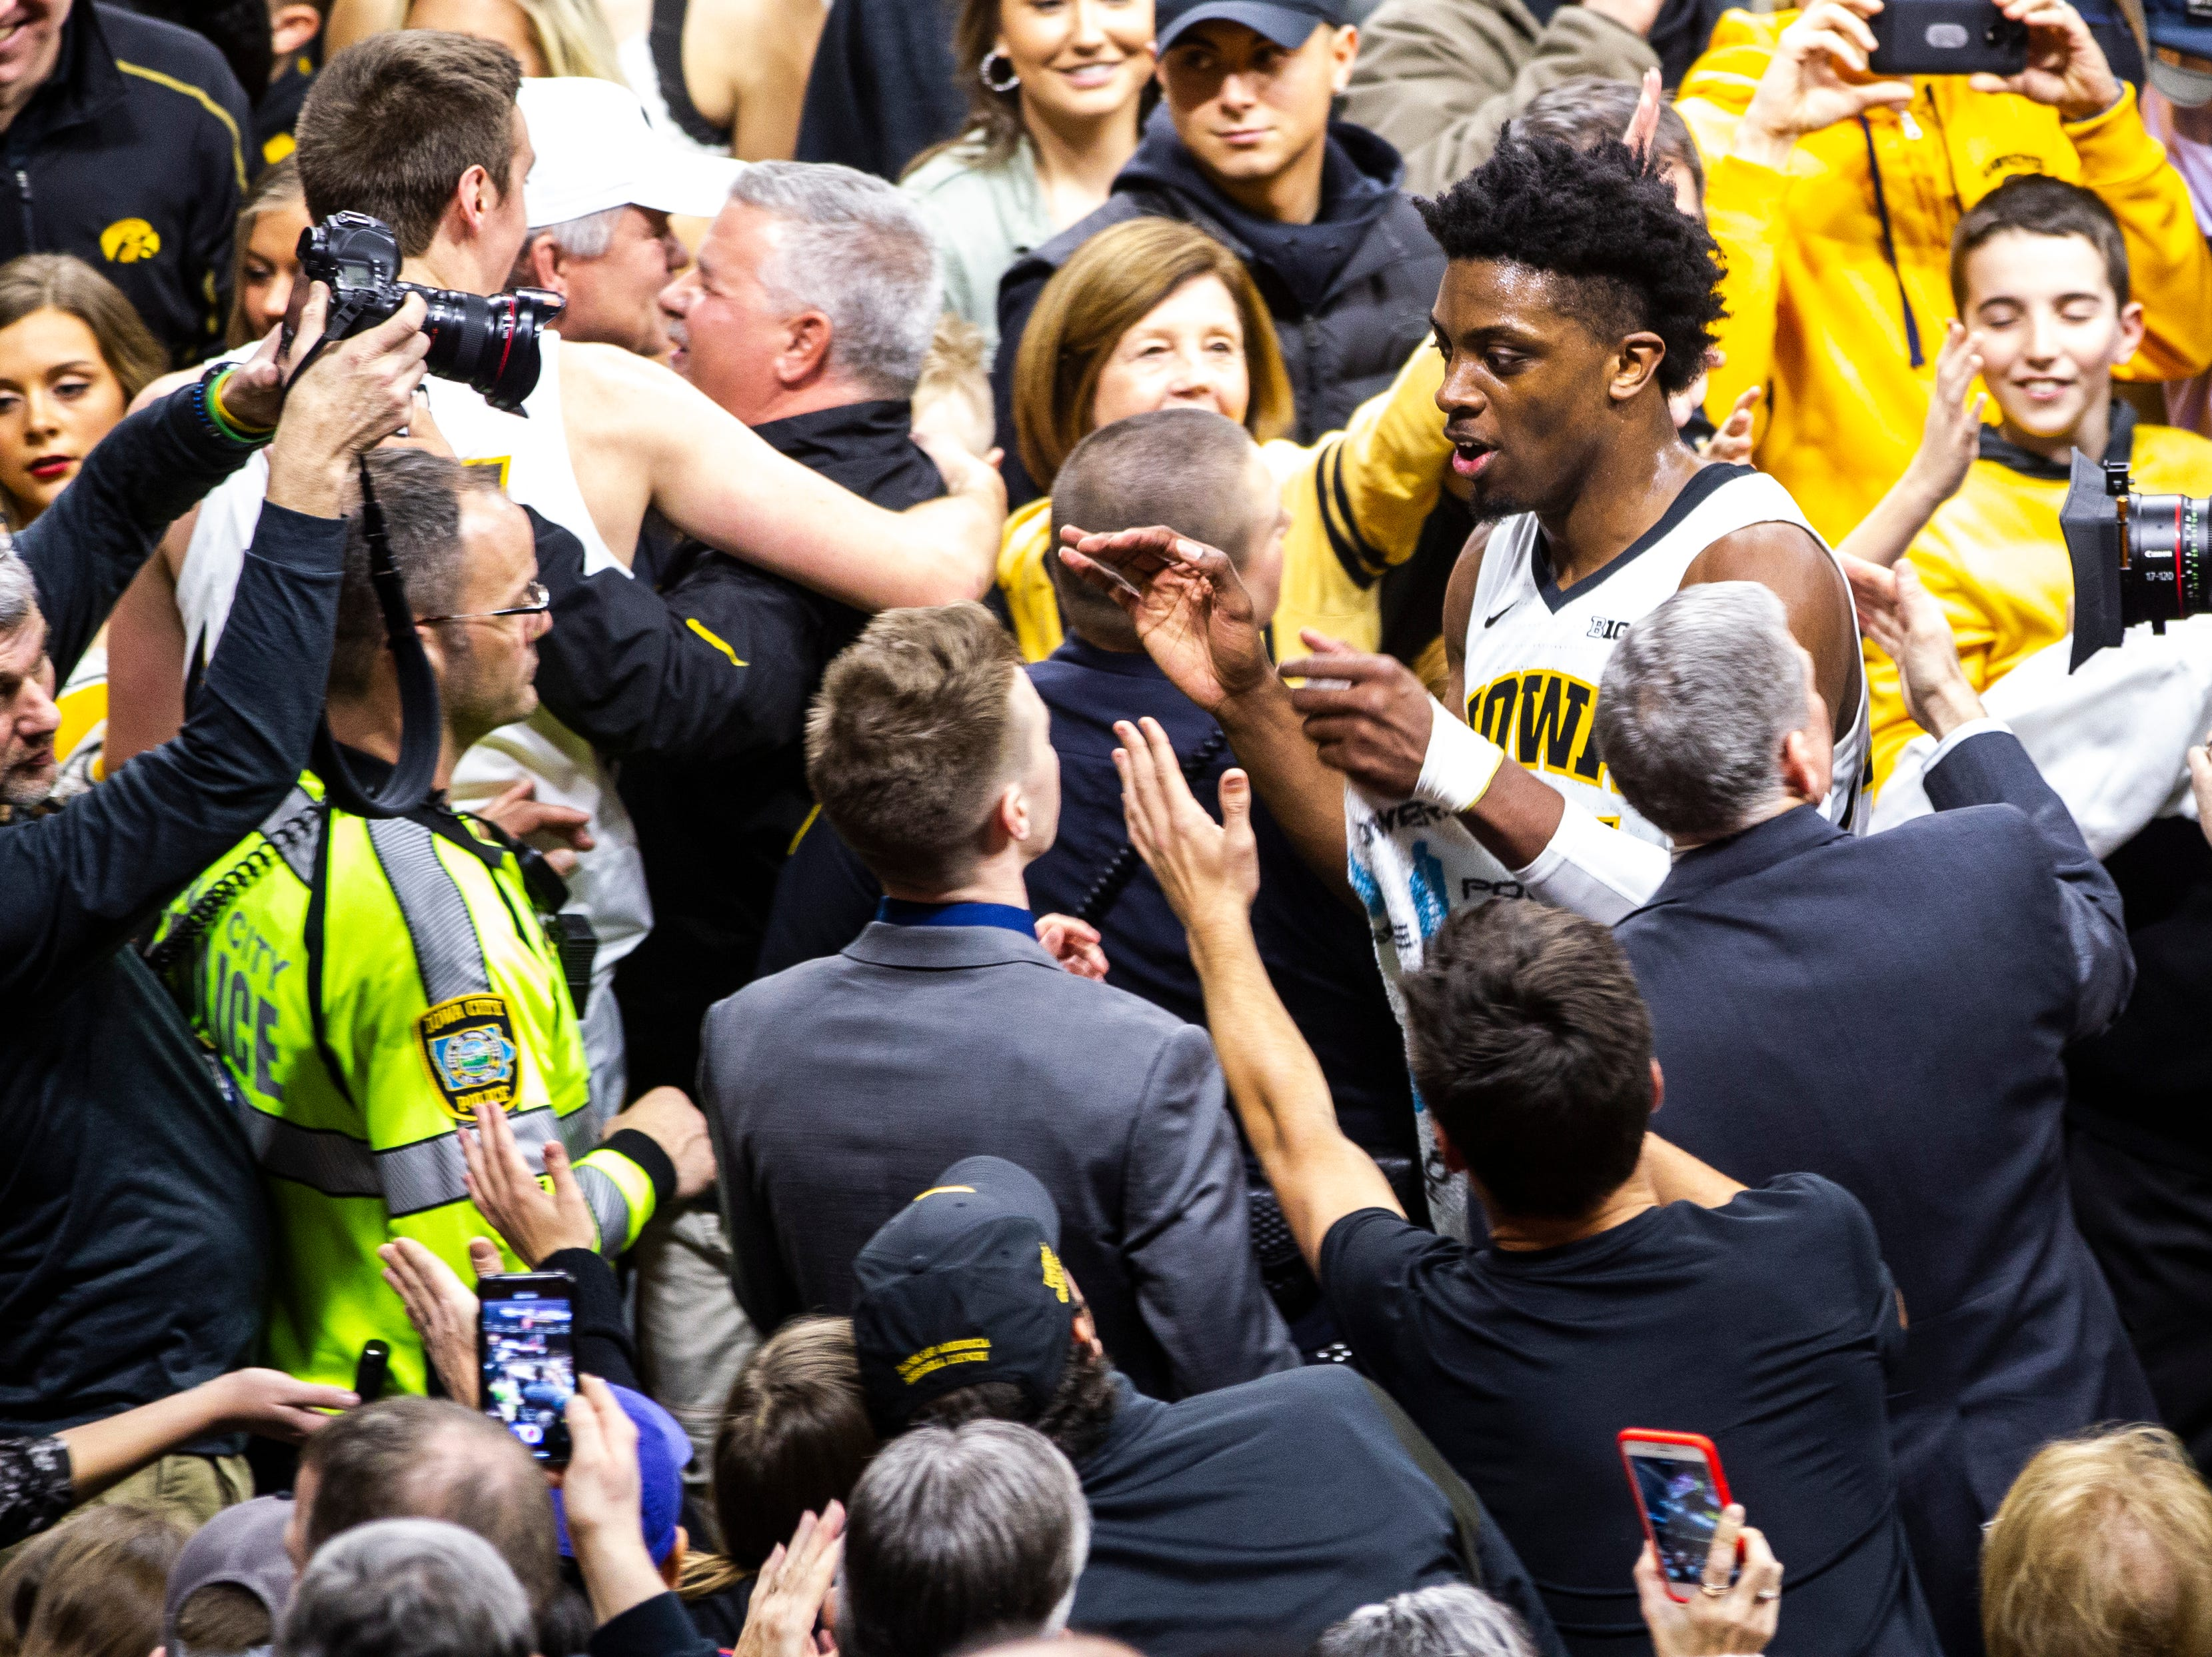 Iowa forward Tyler Cook (25) makes his way off the court while fans celebrate after a NCAA Big Ten Conference men's basketball game on Friday, Feb. 1, 2019, at Carver-Hawkeye Arena in Iowa City, Iowa. The Hawkeyes defeated Michigan's Wolverines, 74-59.